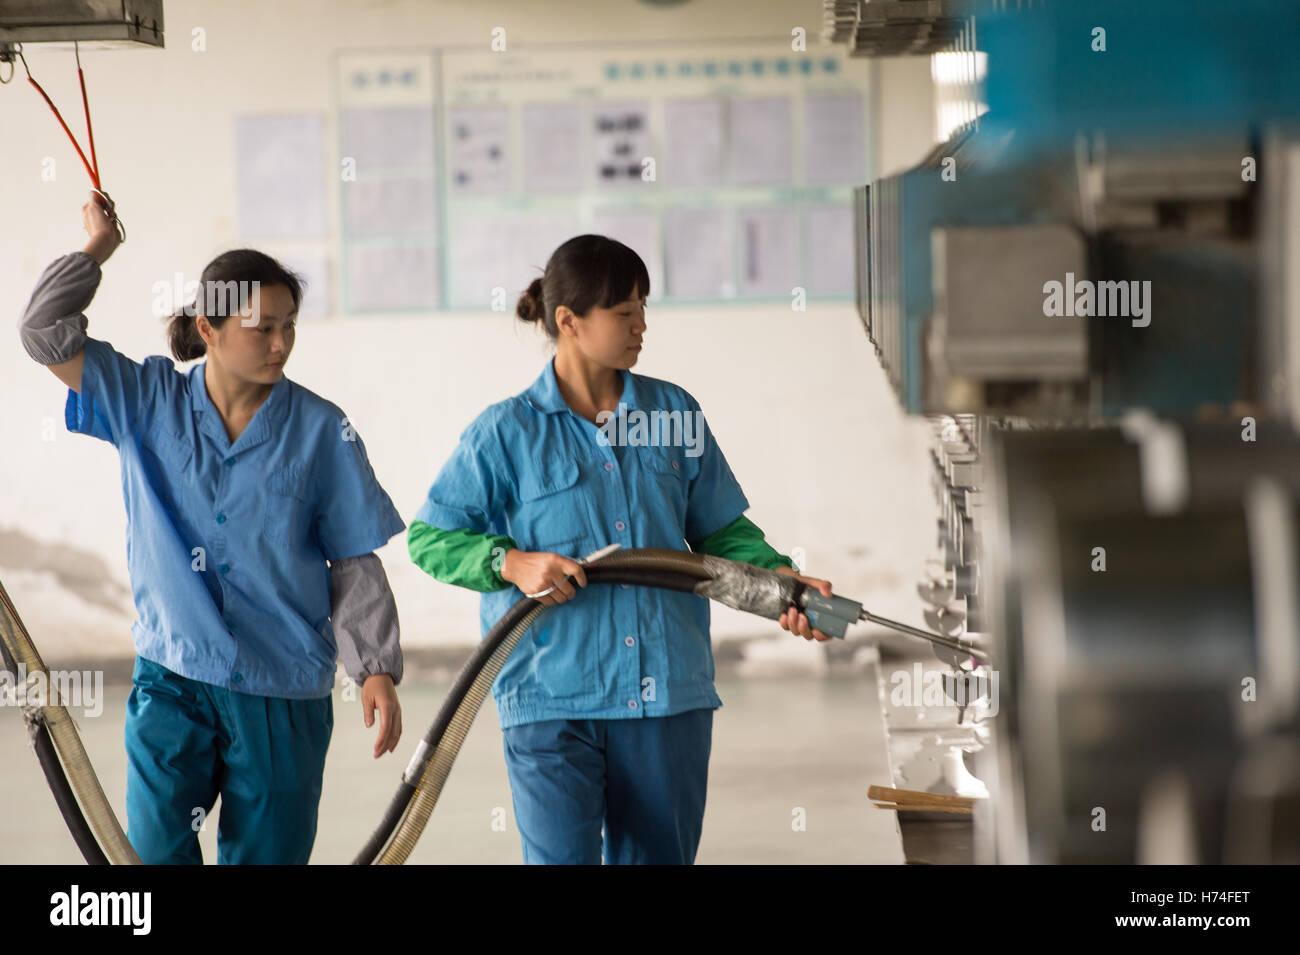 Woman using atomiser in textile factory - Stock Image